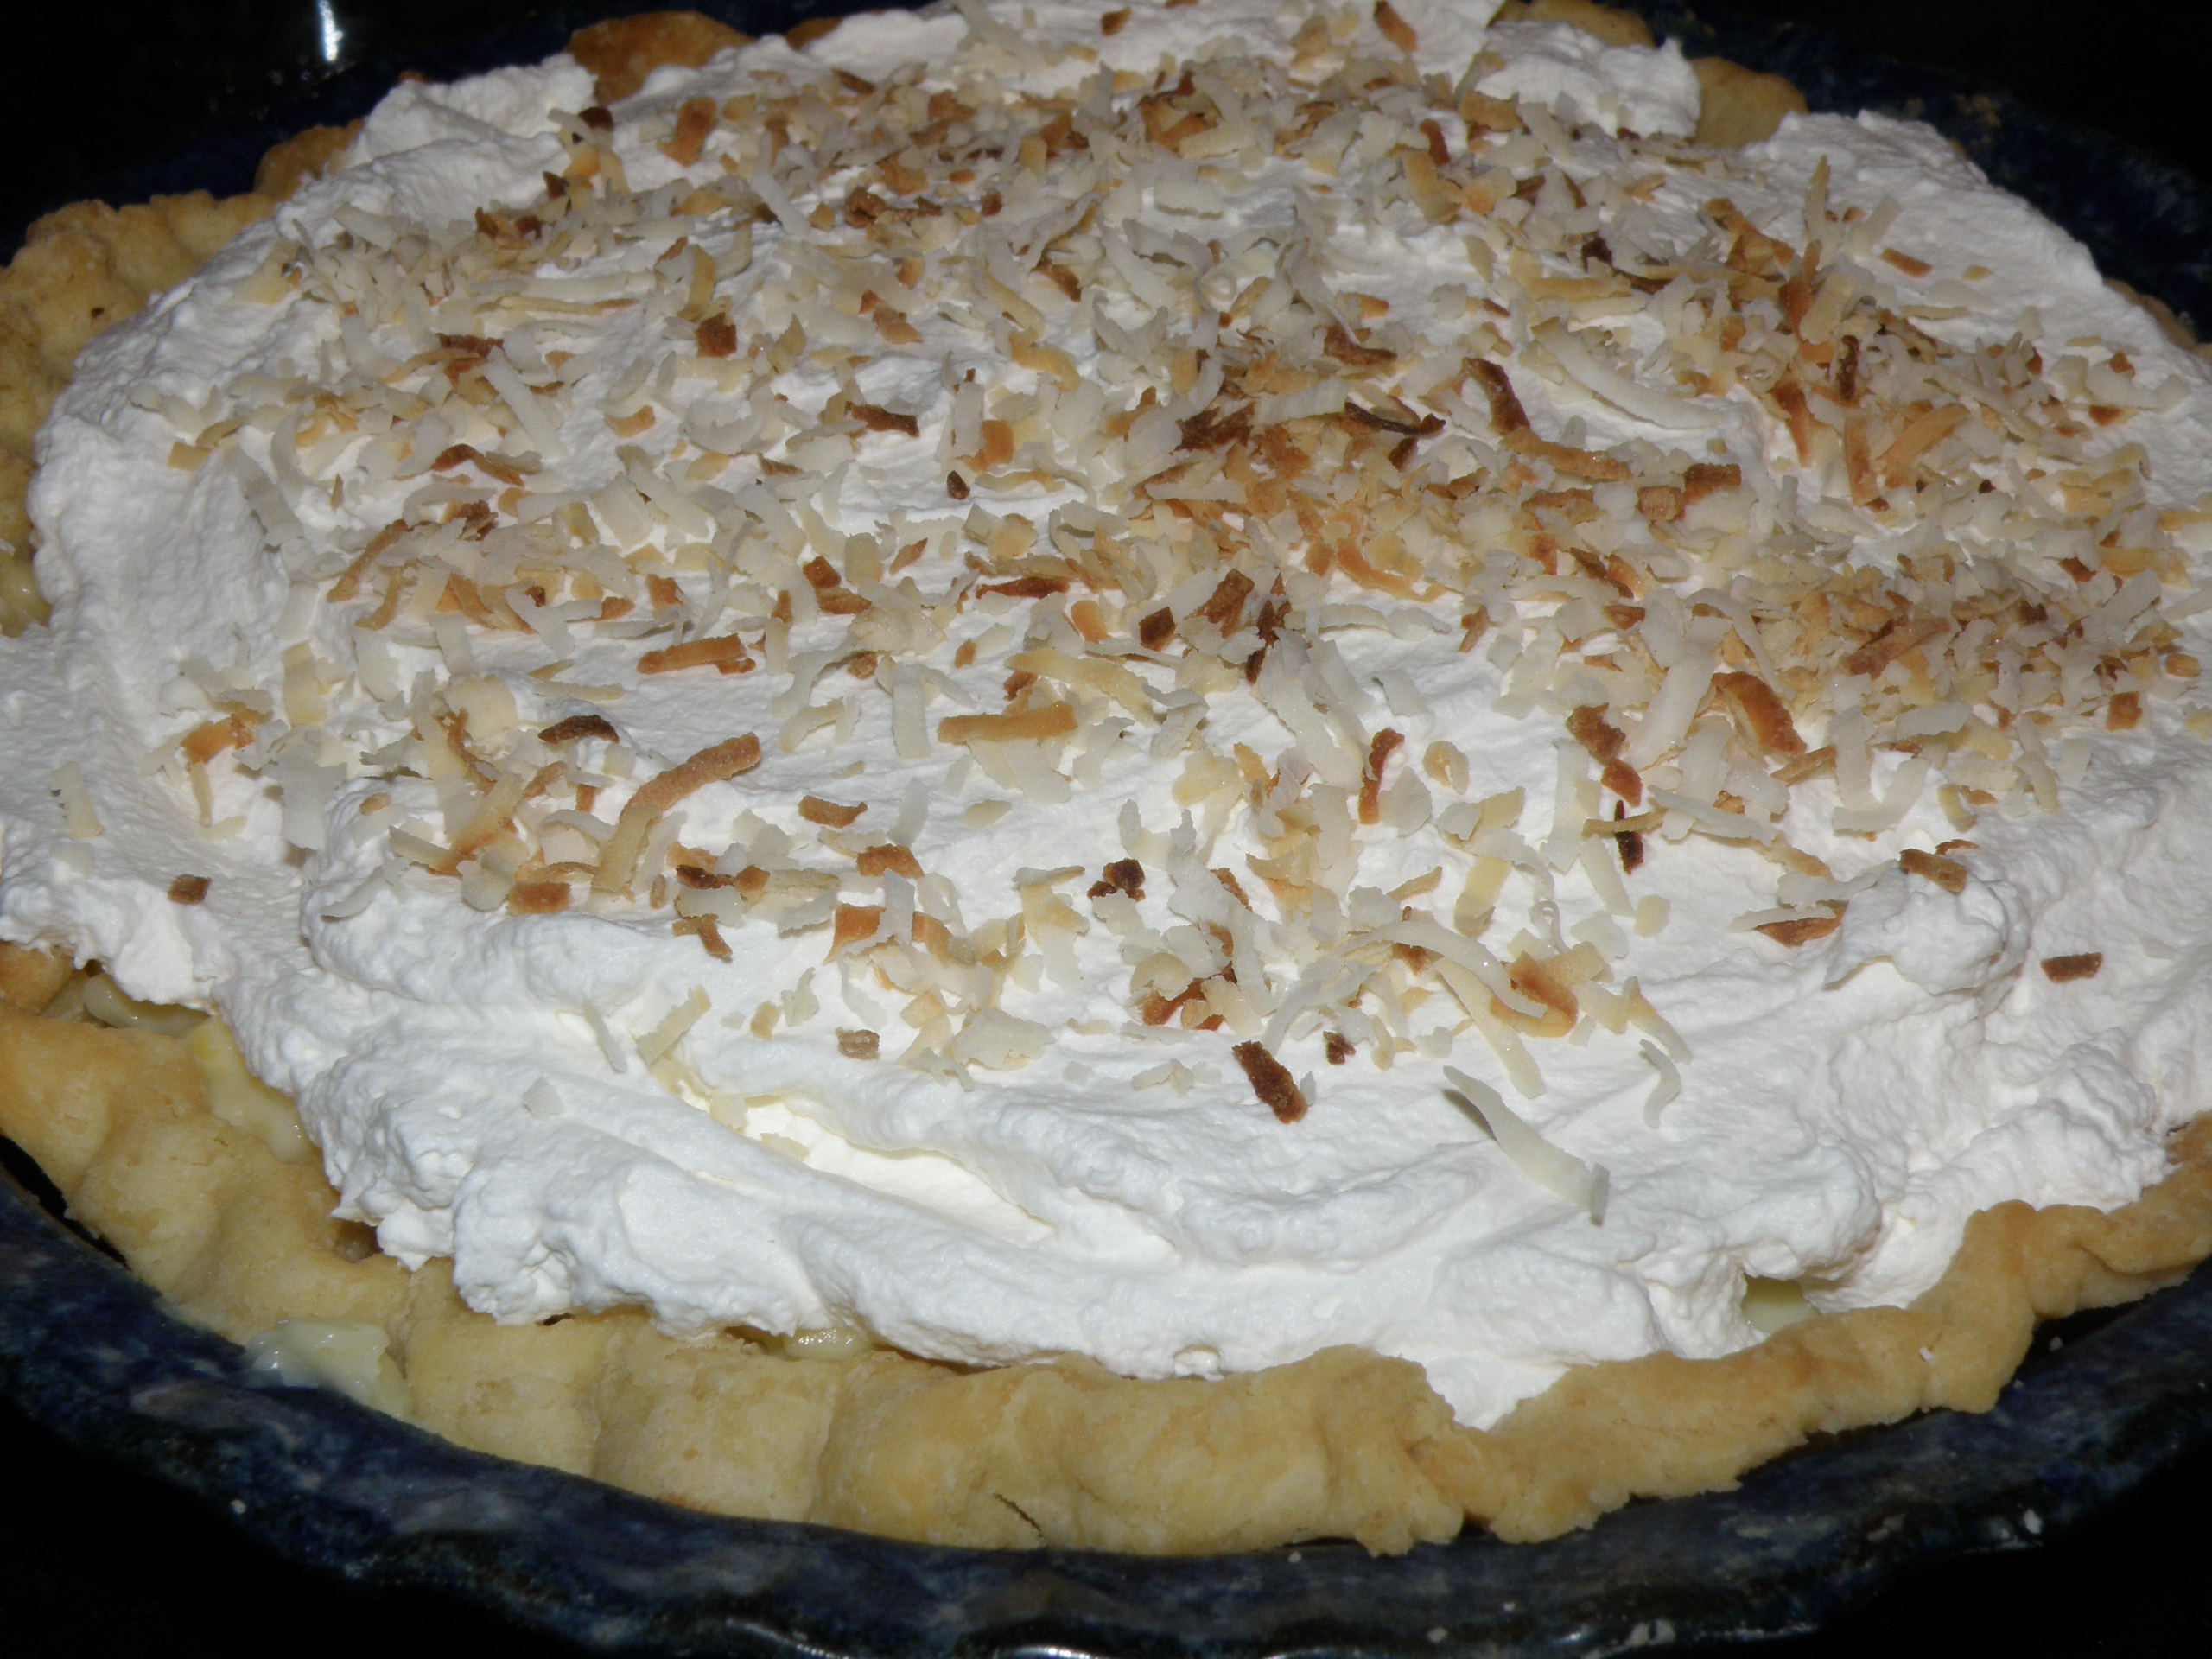 Celebrate National Pie Day with Coconut Cream Pie